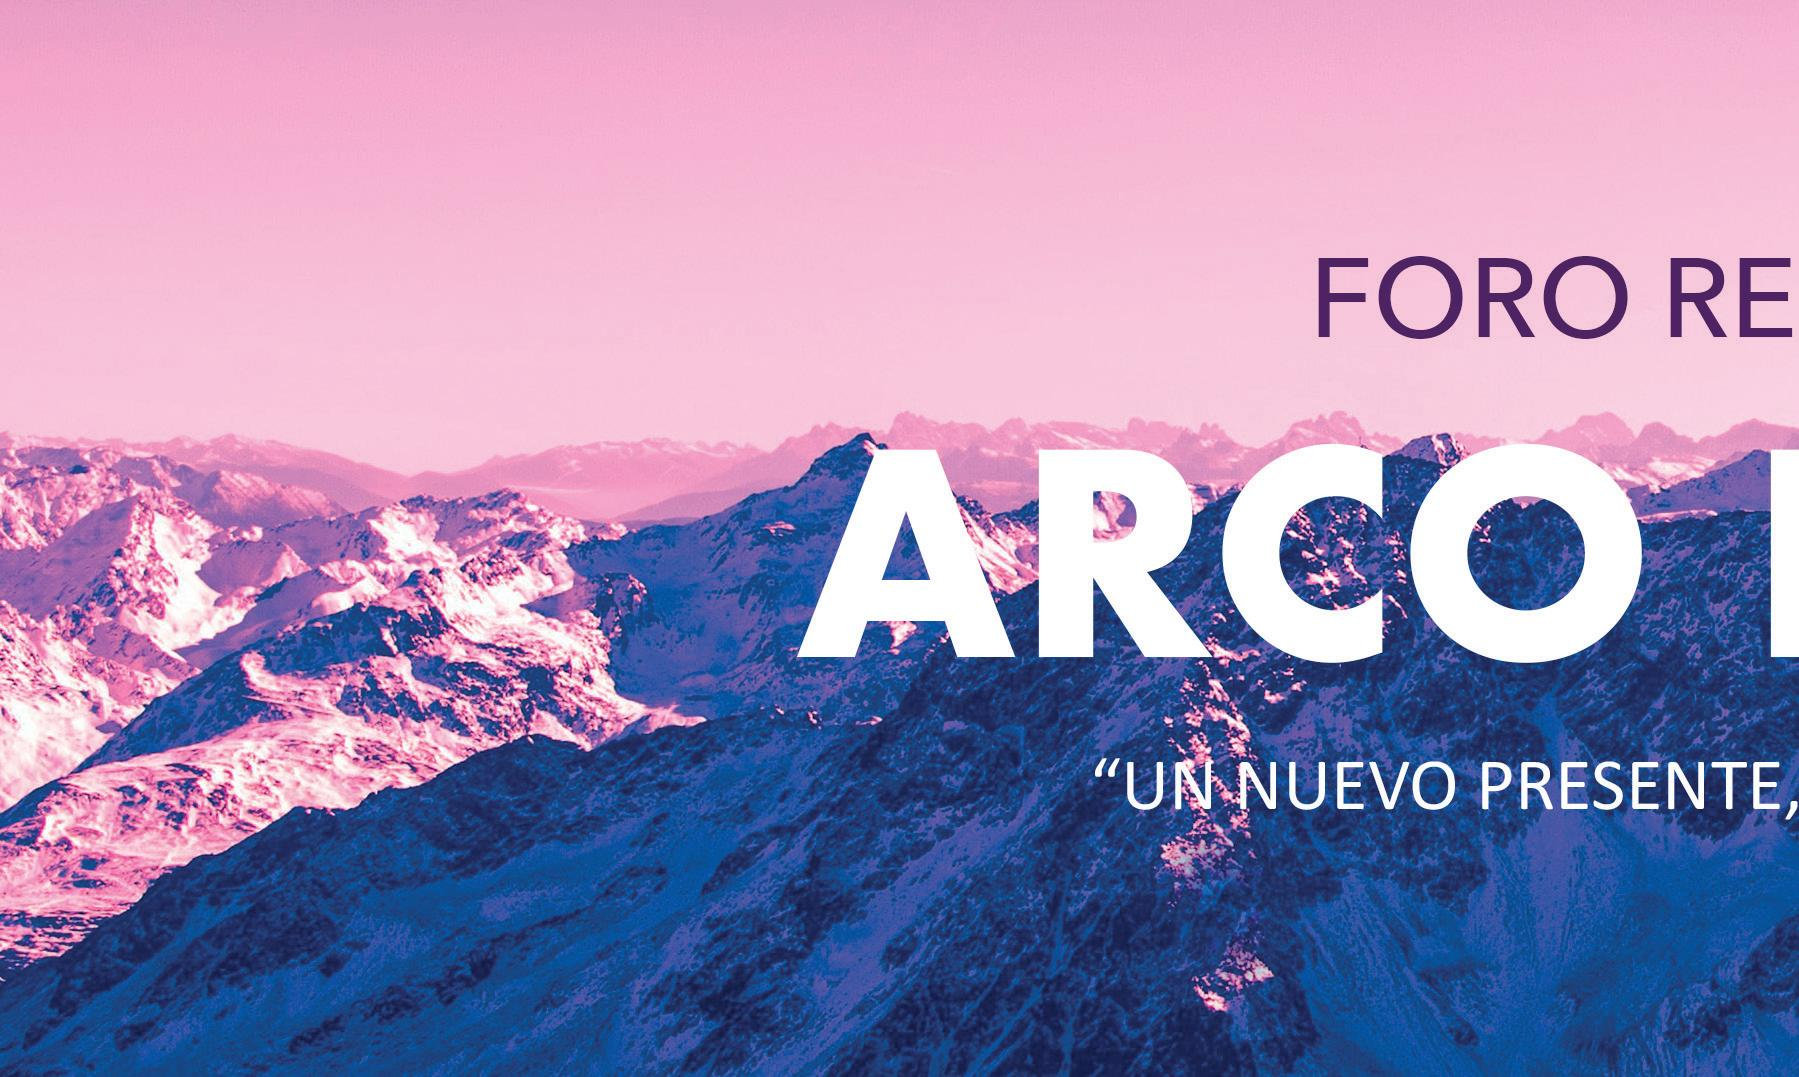 Page 34 of ARCO NORTE